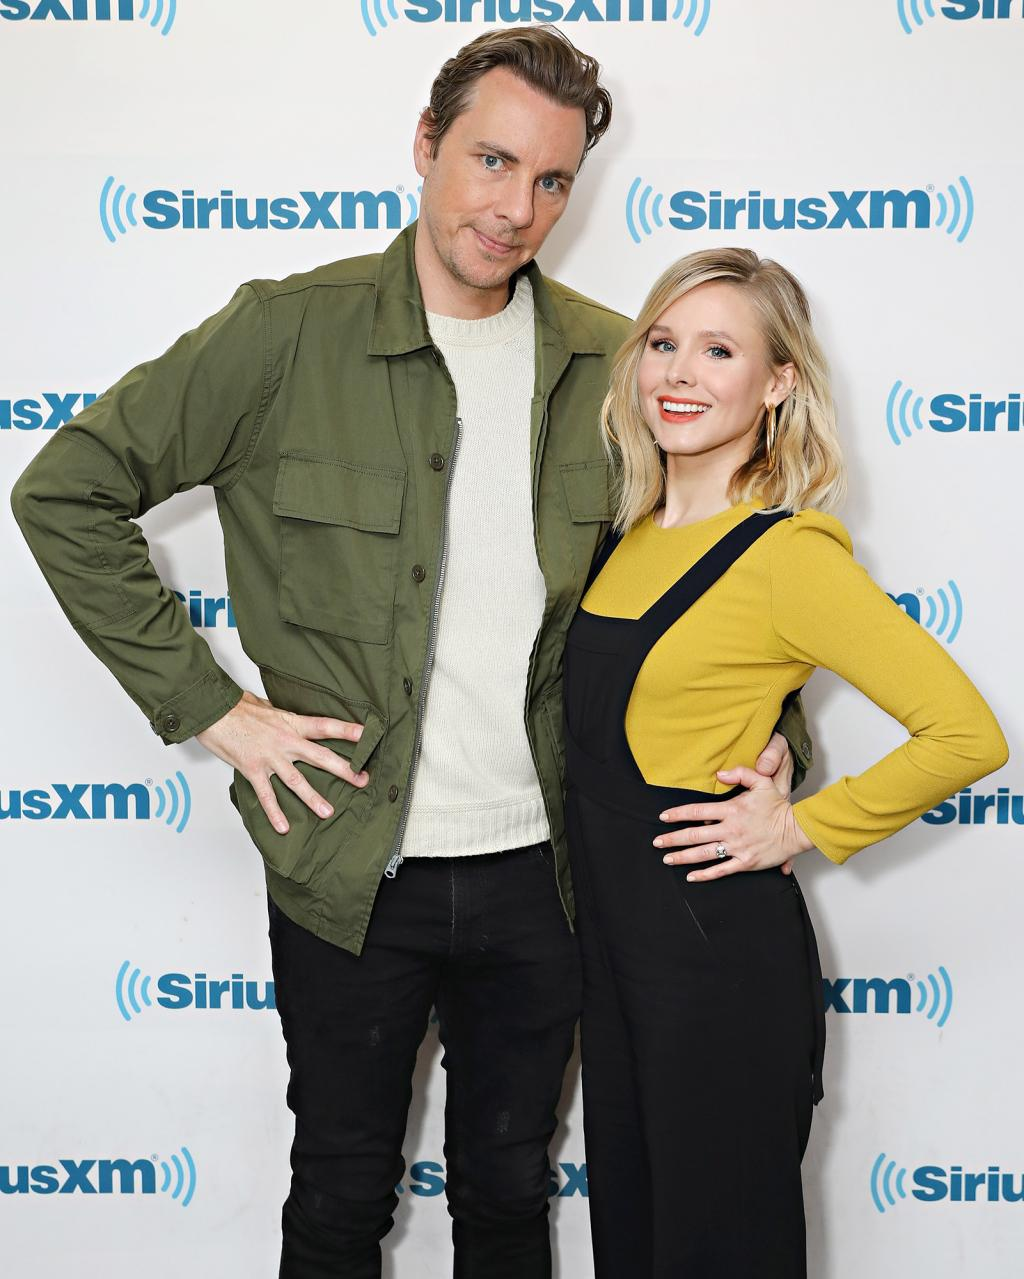 Kristen Bell Opens Up About Early        Toxic      '  Relationship with Dax Shepard:        We Would Fight a    Lot